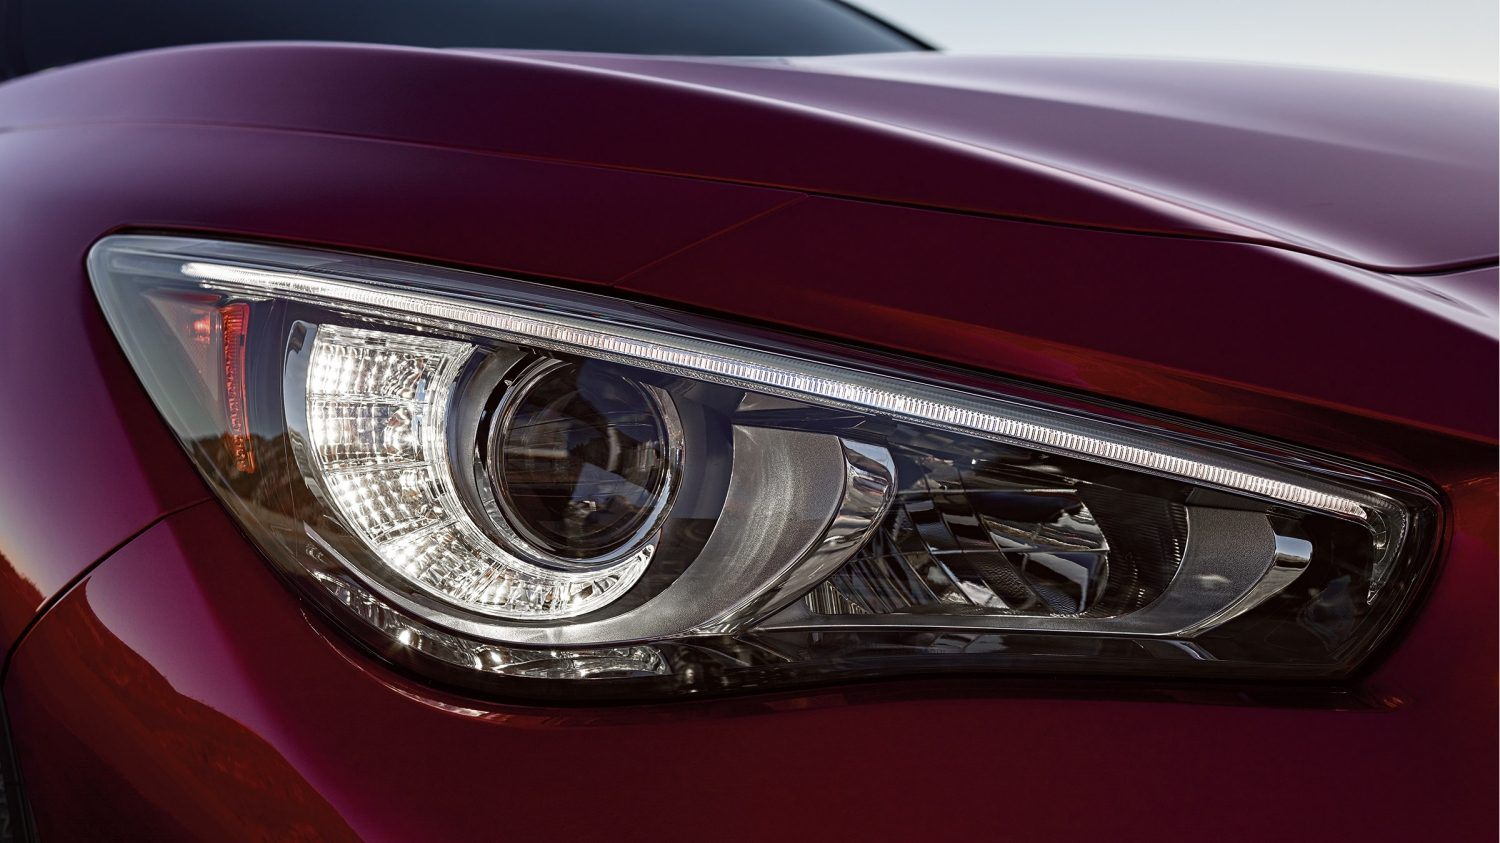 2018 INFINITI Q50 Red Sport Sedan Design | Illuminating LED Headlights